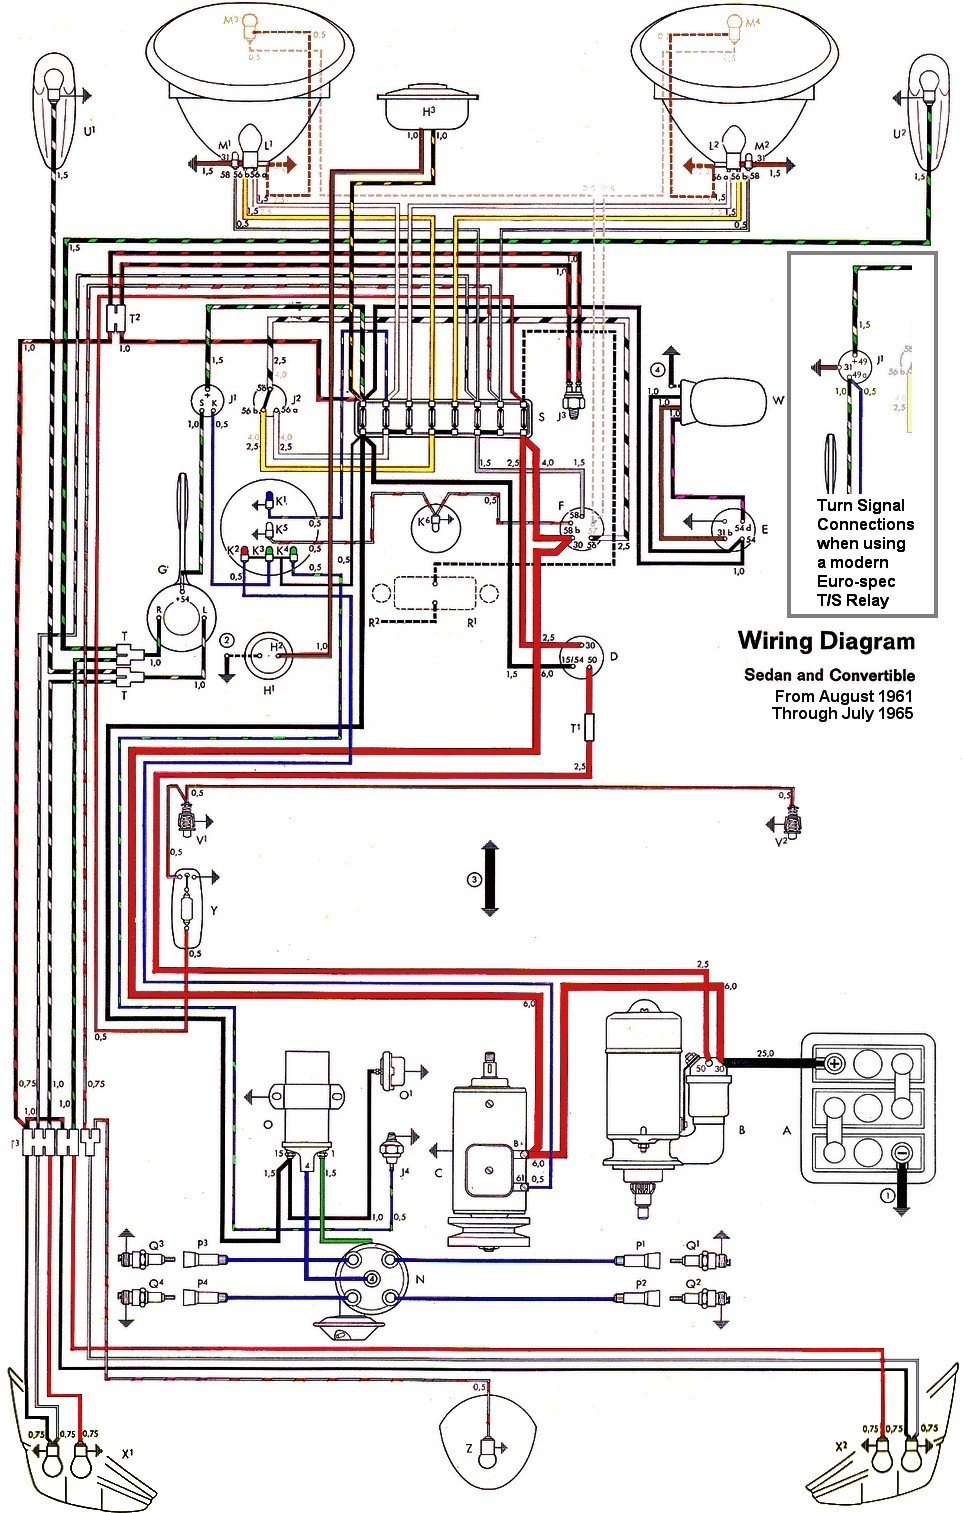 63 Vw Fuse Diagram Another Wiring Diagrams 2005 Volkswagen Jetta Box Online Schematics Rh Delvato Co 1990